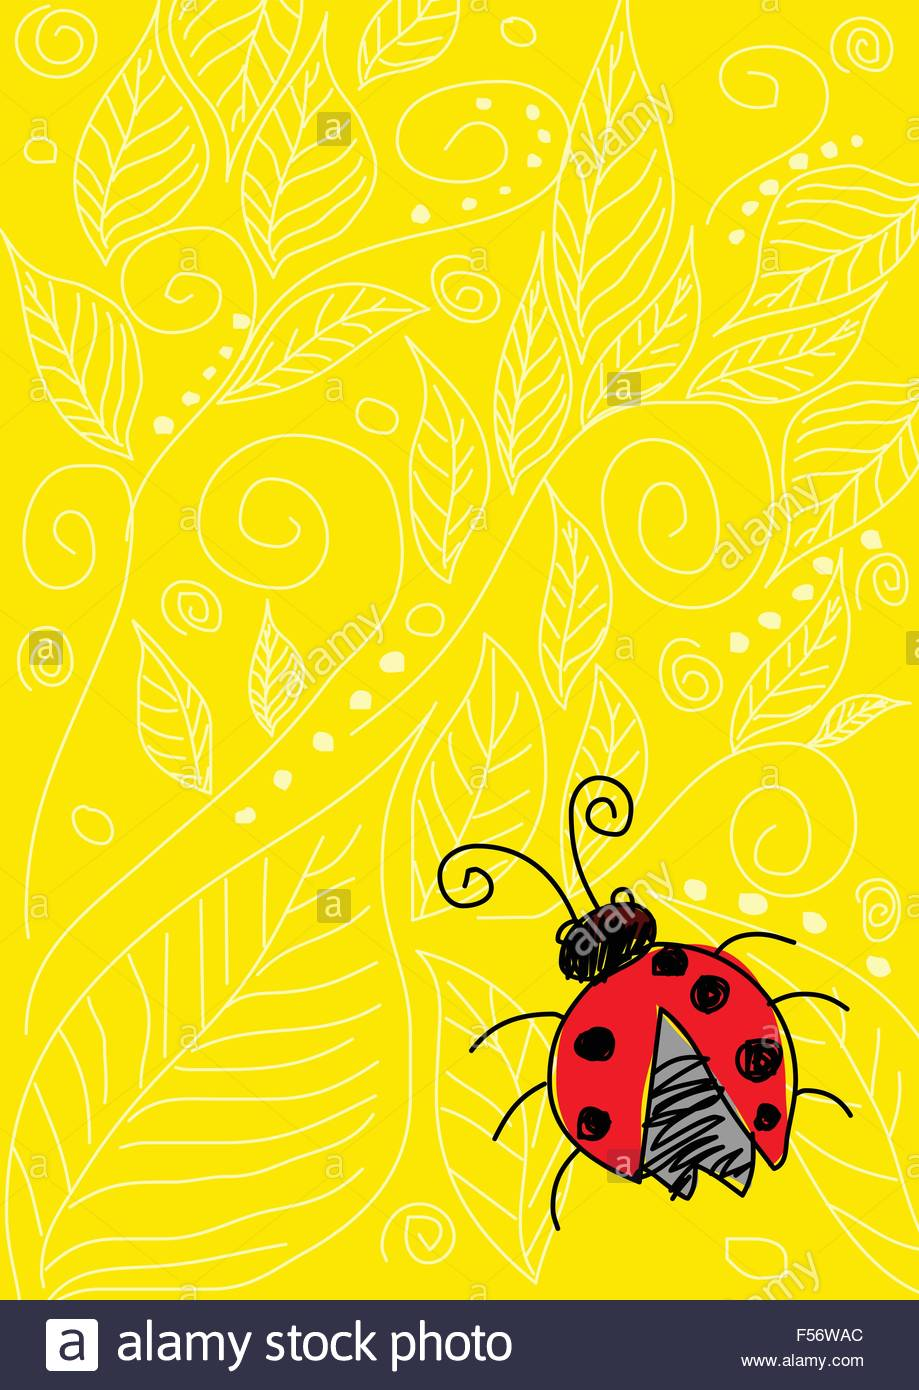 Naive art illustration of a beetle on yellow ornament background - Stock Vector